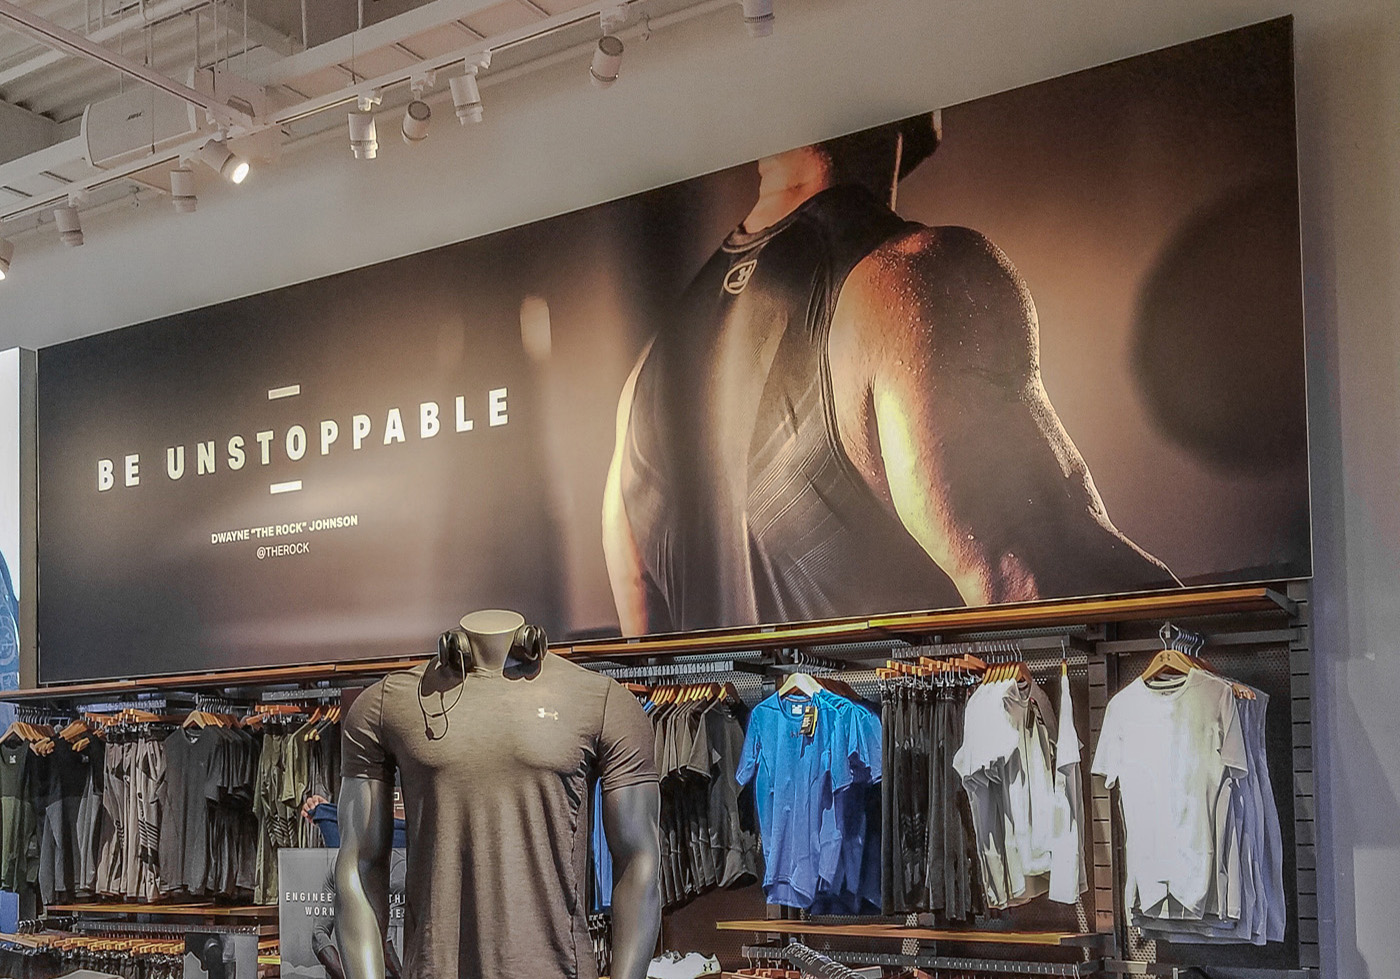 signage SEG fabric tension stretch frame framing sign UnderArmour store retail visuals graphics printing printed marketing merchandising